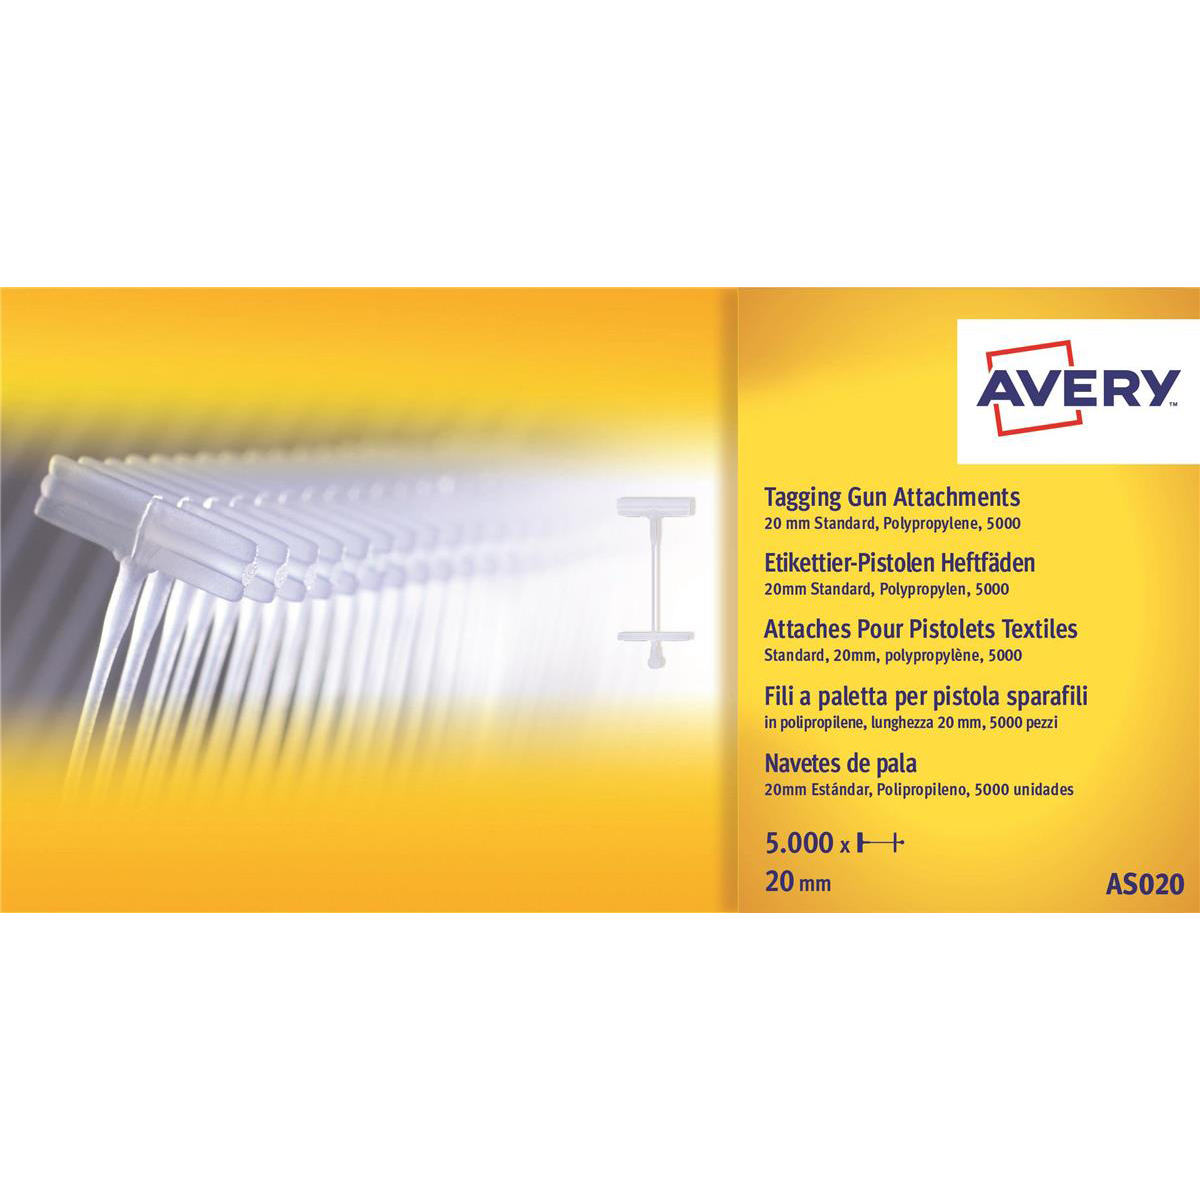 Avery Tagging Gun Attachments Polypropylene with Paddles 20mm Ref AS020 Pack 5000